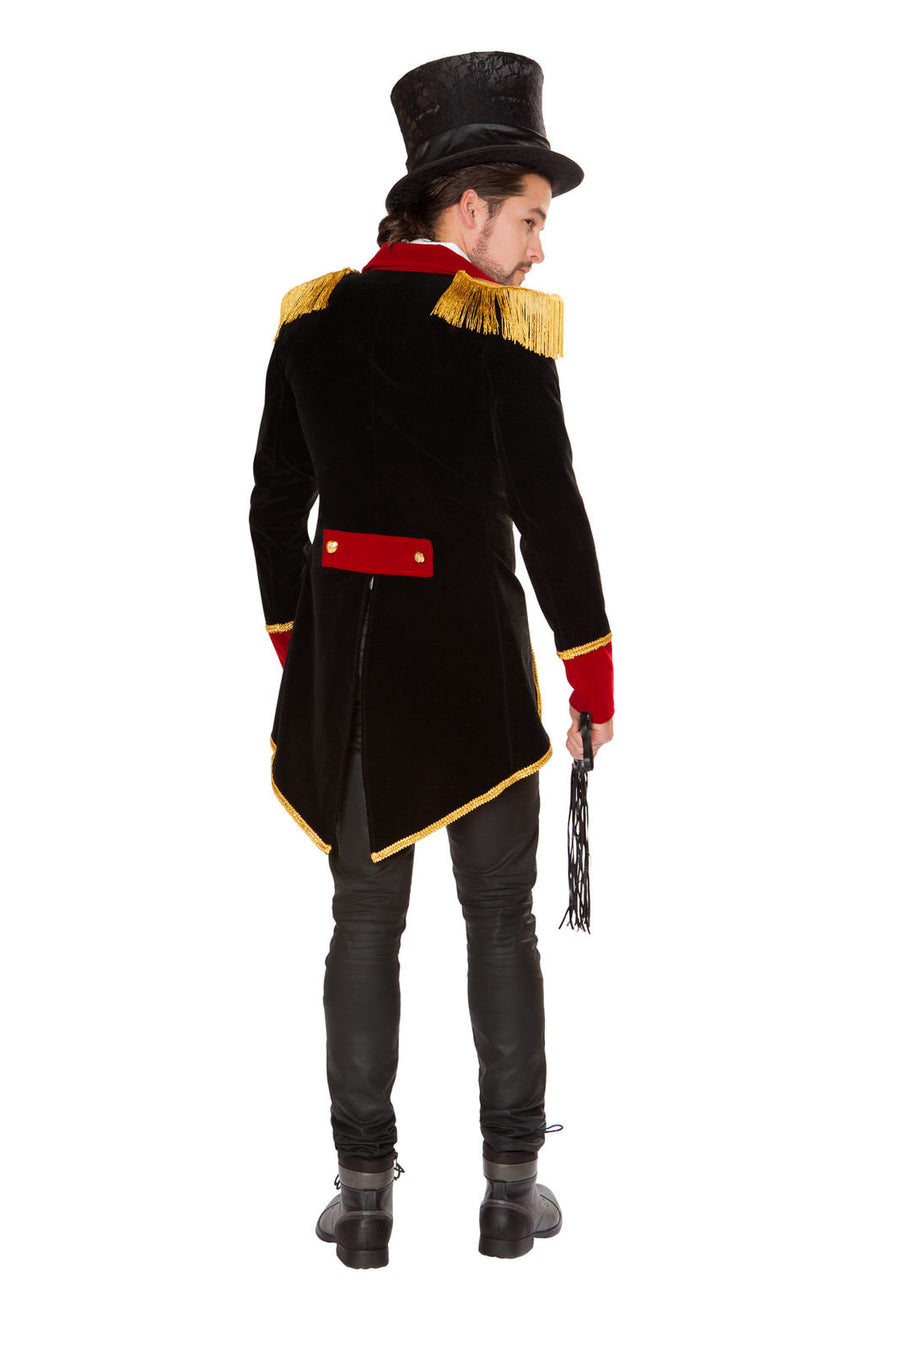 4820 - 3pc Men's Ringmaster ${description} | Roma Costume and Roma Confidential wholesale manufacturer of Women Apparel bulk world wide wholesale and world wide drop ship services for Adult Halloween Costumes, Sexy and Elegant Lingerie, Rave Clothing, Club wear, and Christmas Costumes. Costumes, mens, Roma Costume, Inc., Roma Costume, Roma Confidential, Wholesale clothing, drop ship, drop ship service, Wholesale Lingerie, Wholesale Adult Halloween Costumes, Rave Clothing, EDM Clothing, Festival Wear, Christmas Costumes, Clubwear, Club wear.